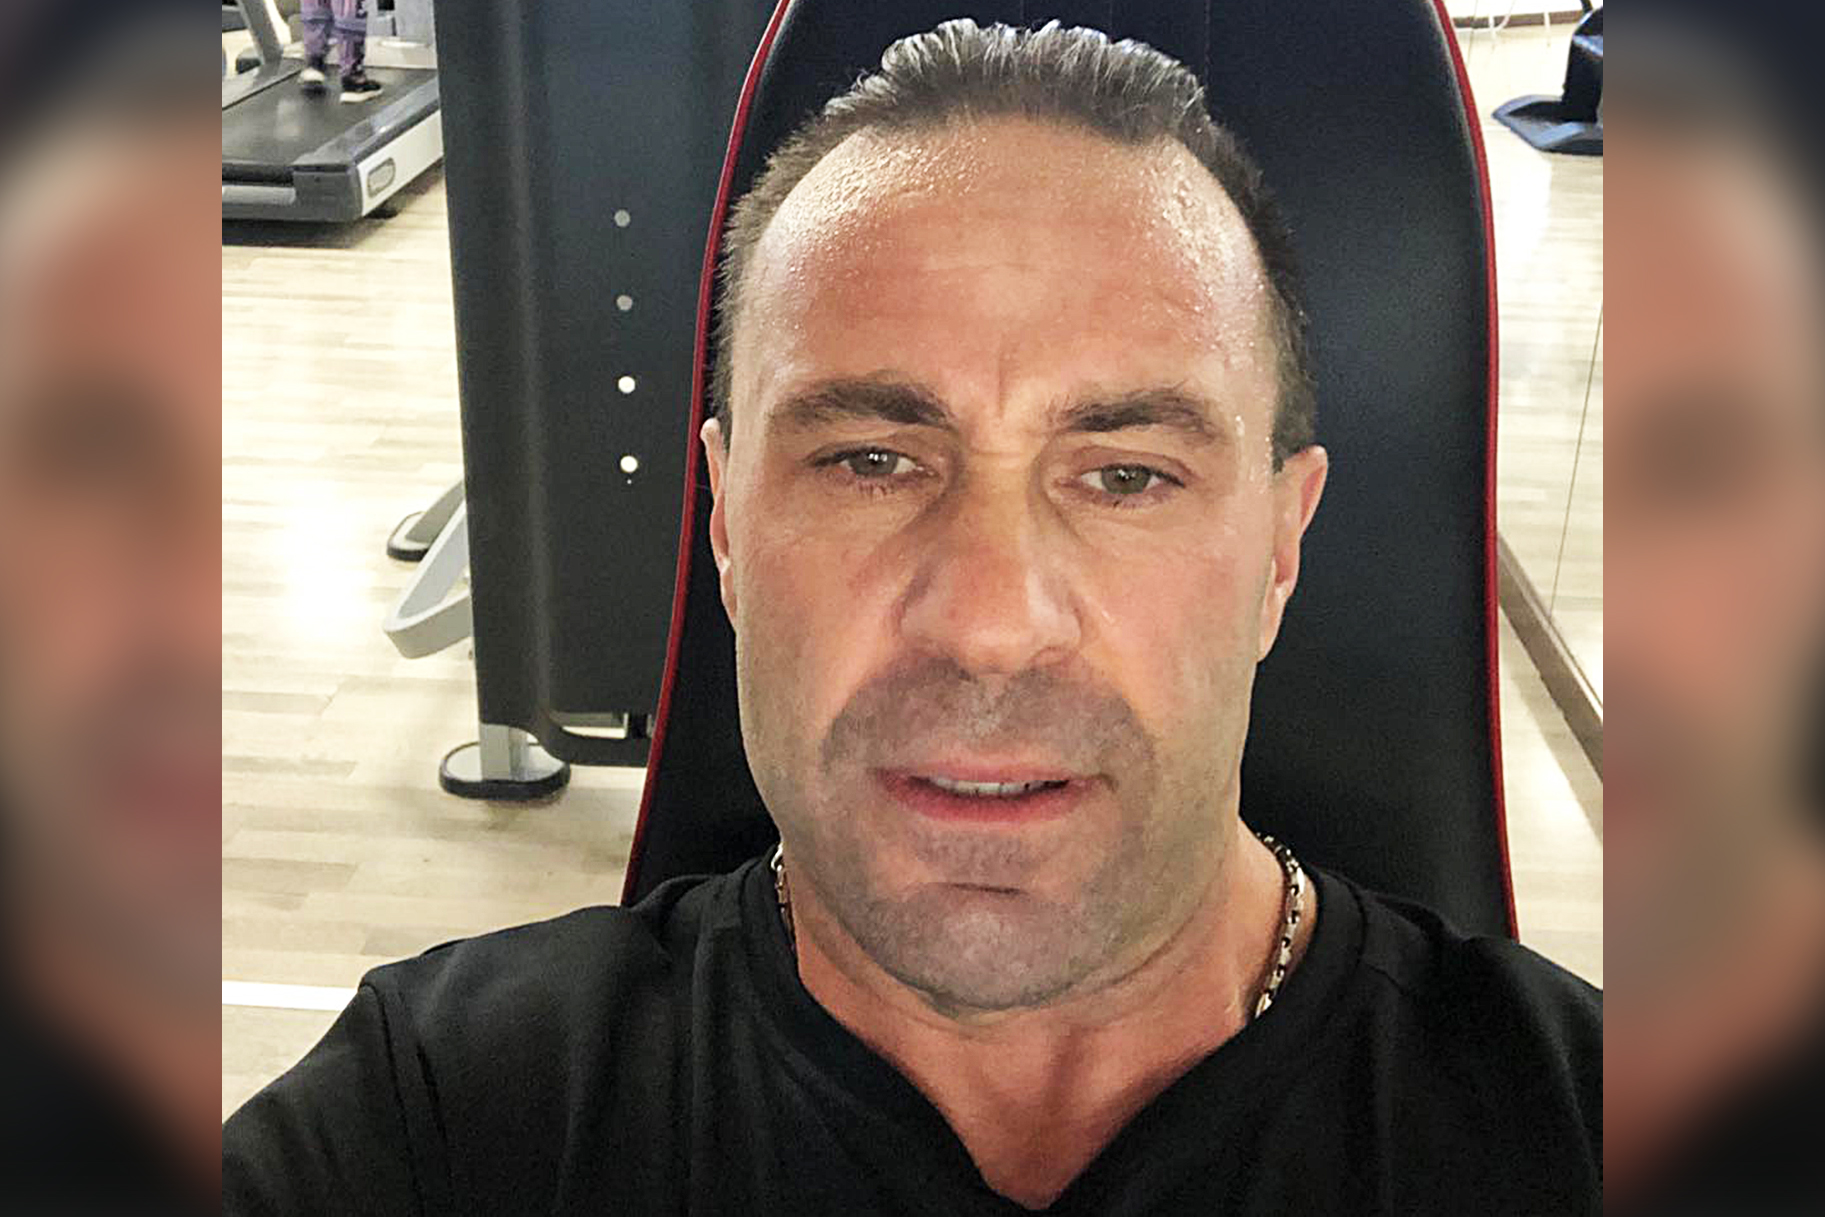 Joe Giudice Reveals He S Dating A Lawyer In Italy Celebrity Insider Joe giudice revealed some big updates about his life in italy. joe giudice reveals he s dating a